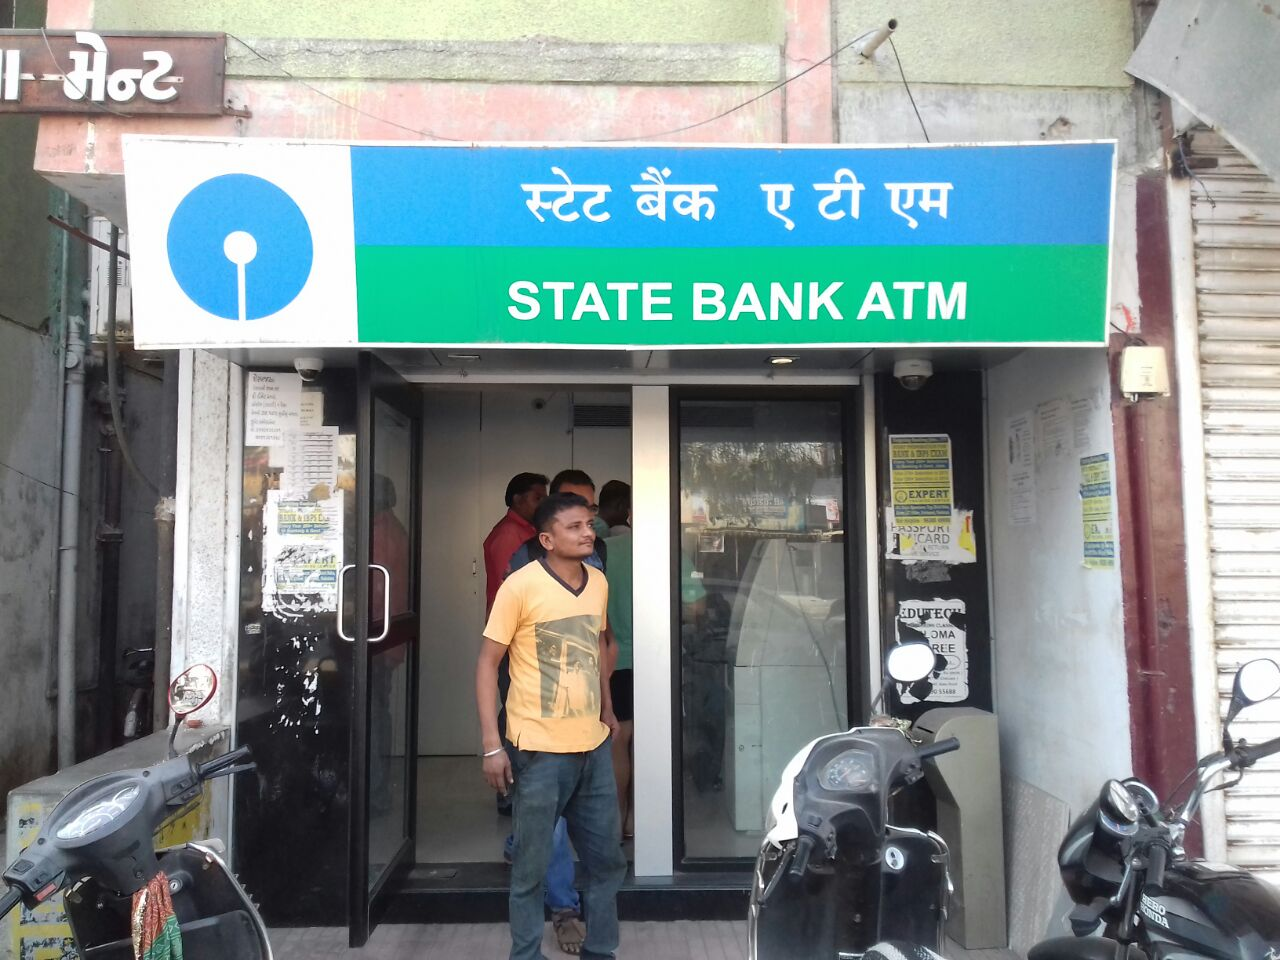 Public in problem as ATMS closed on Friday